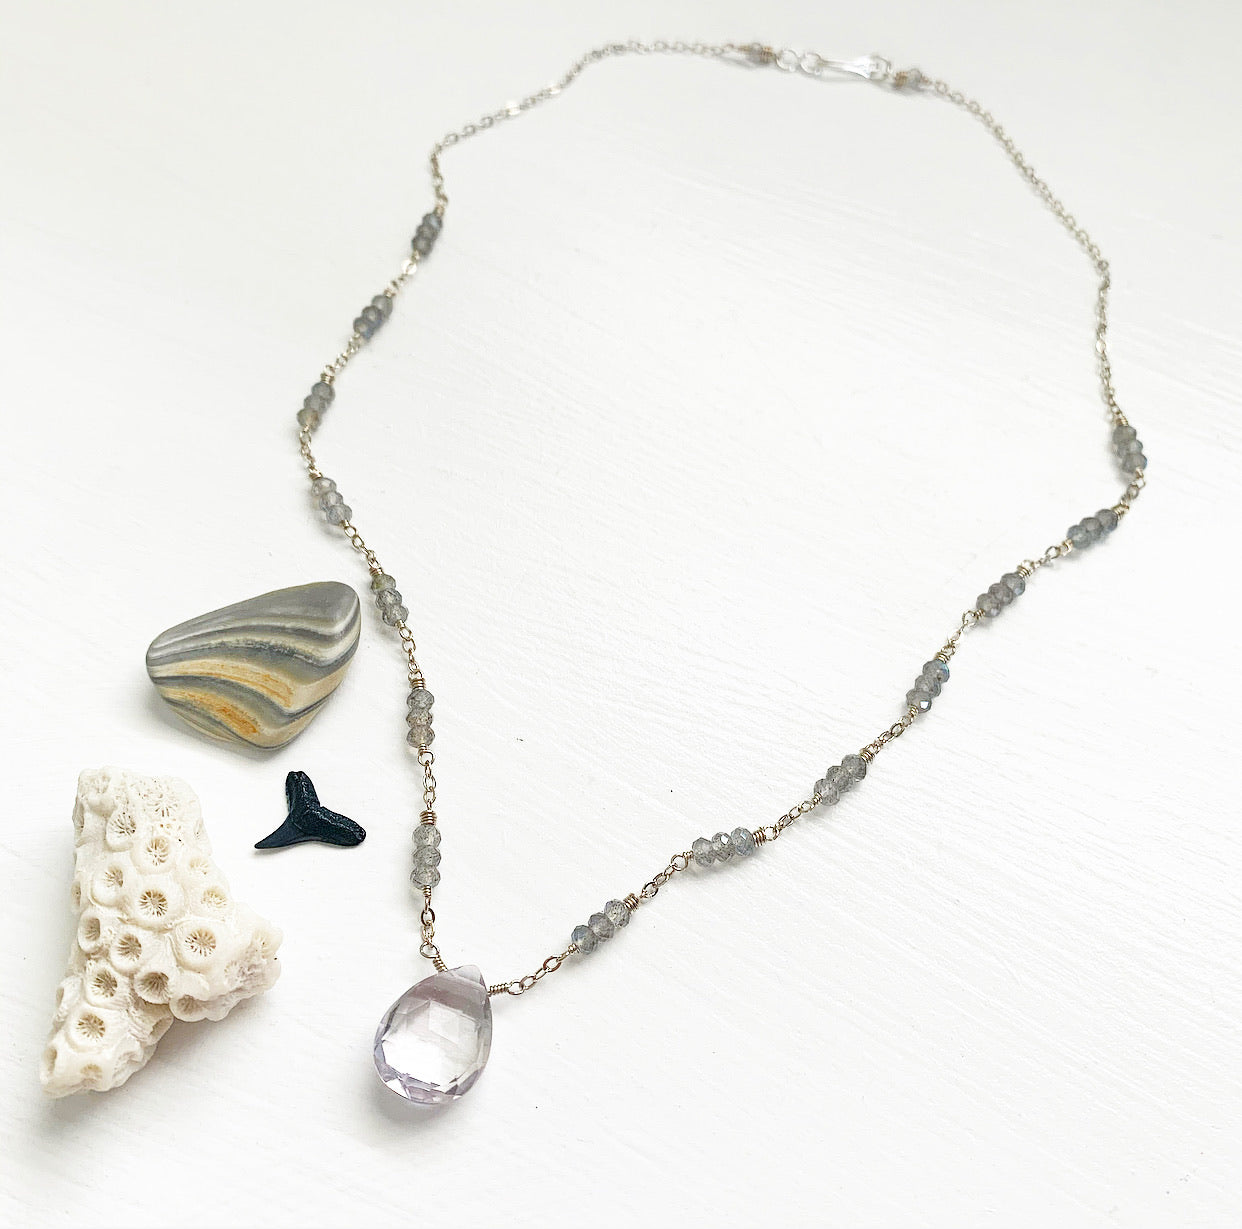 960-Gemstone Layering Necklace